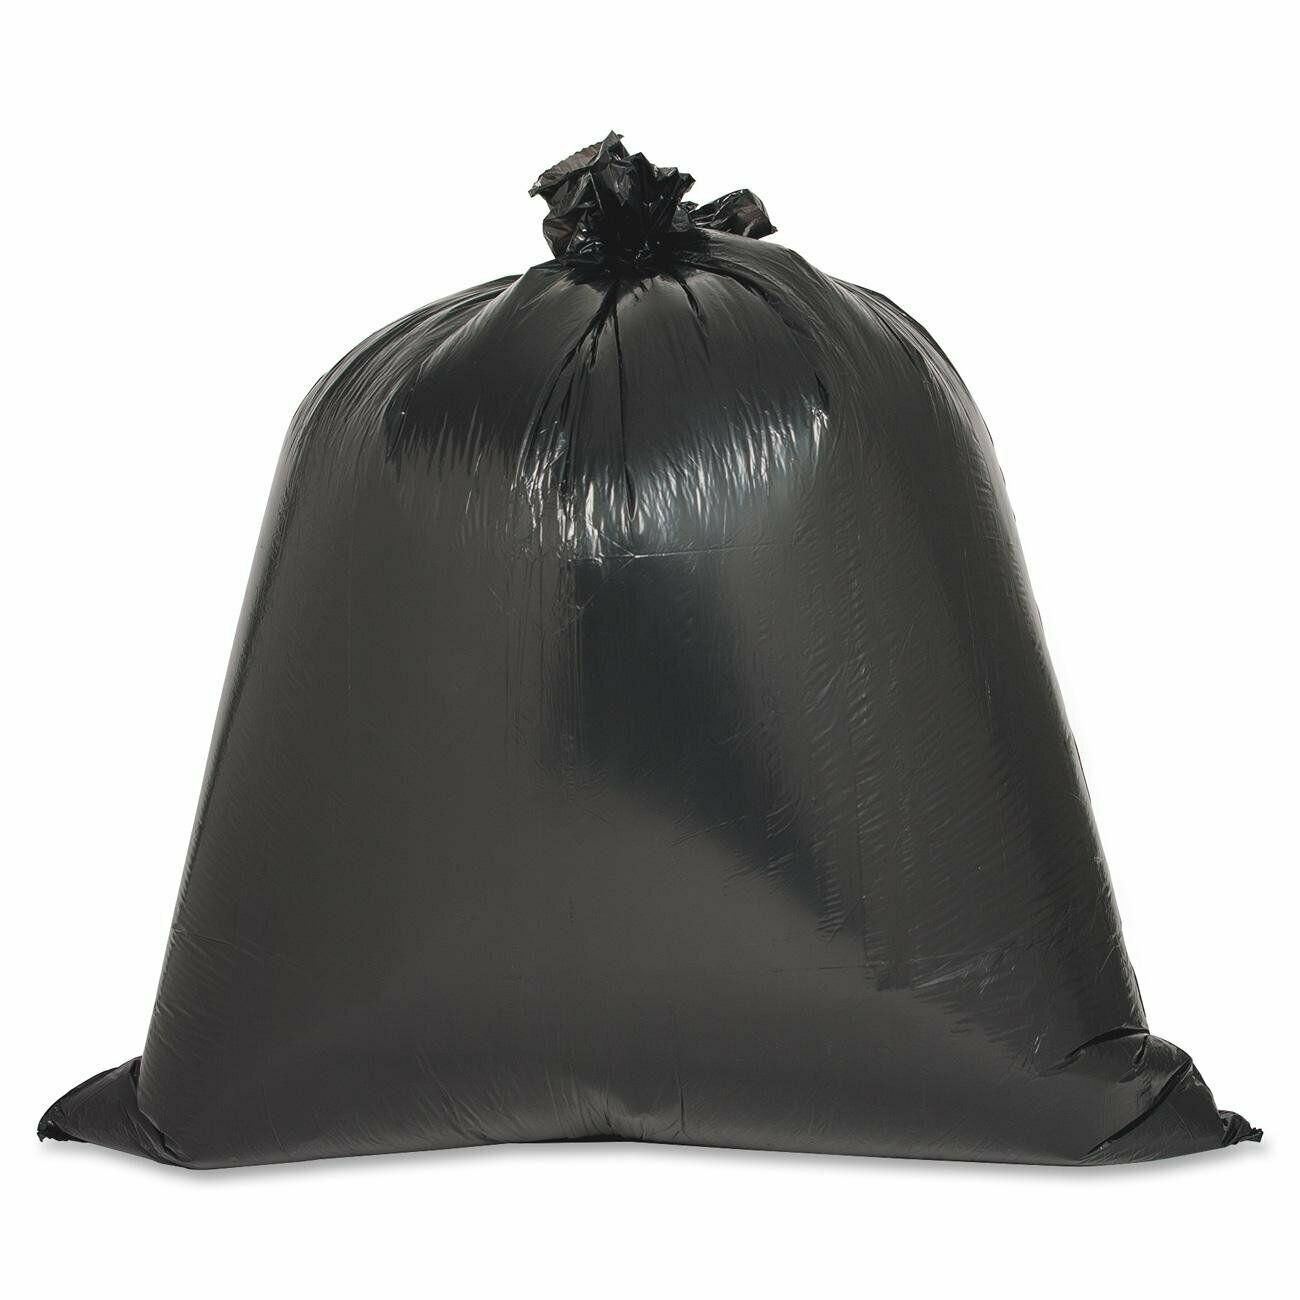 40 plastic trash bags black strong heavy